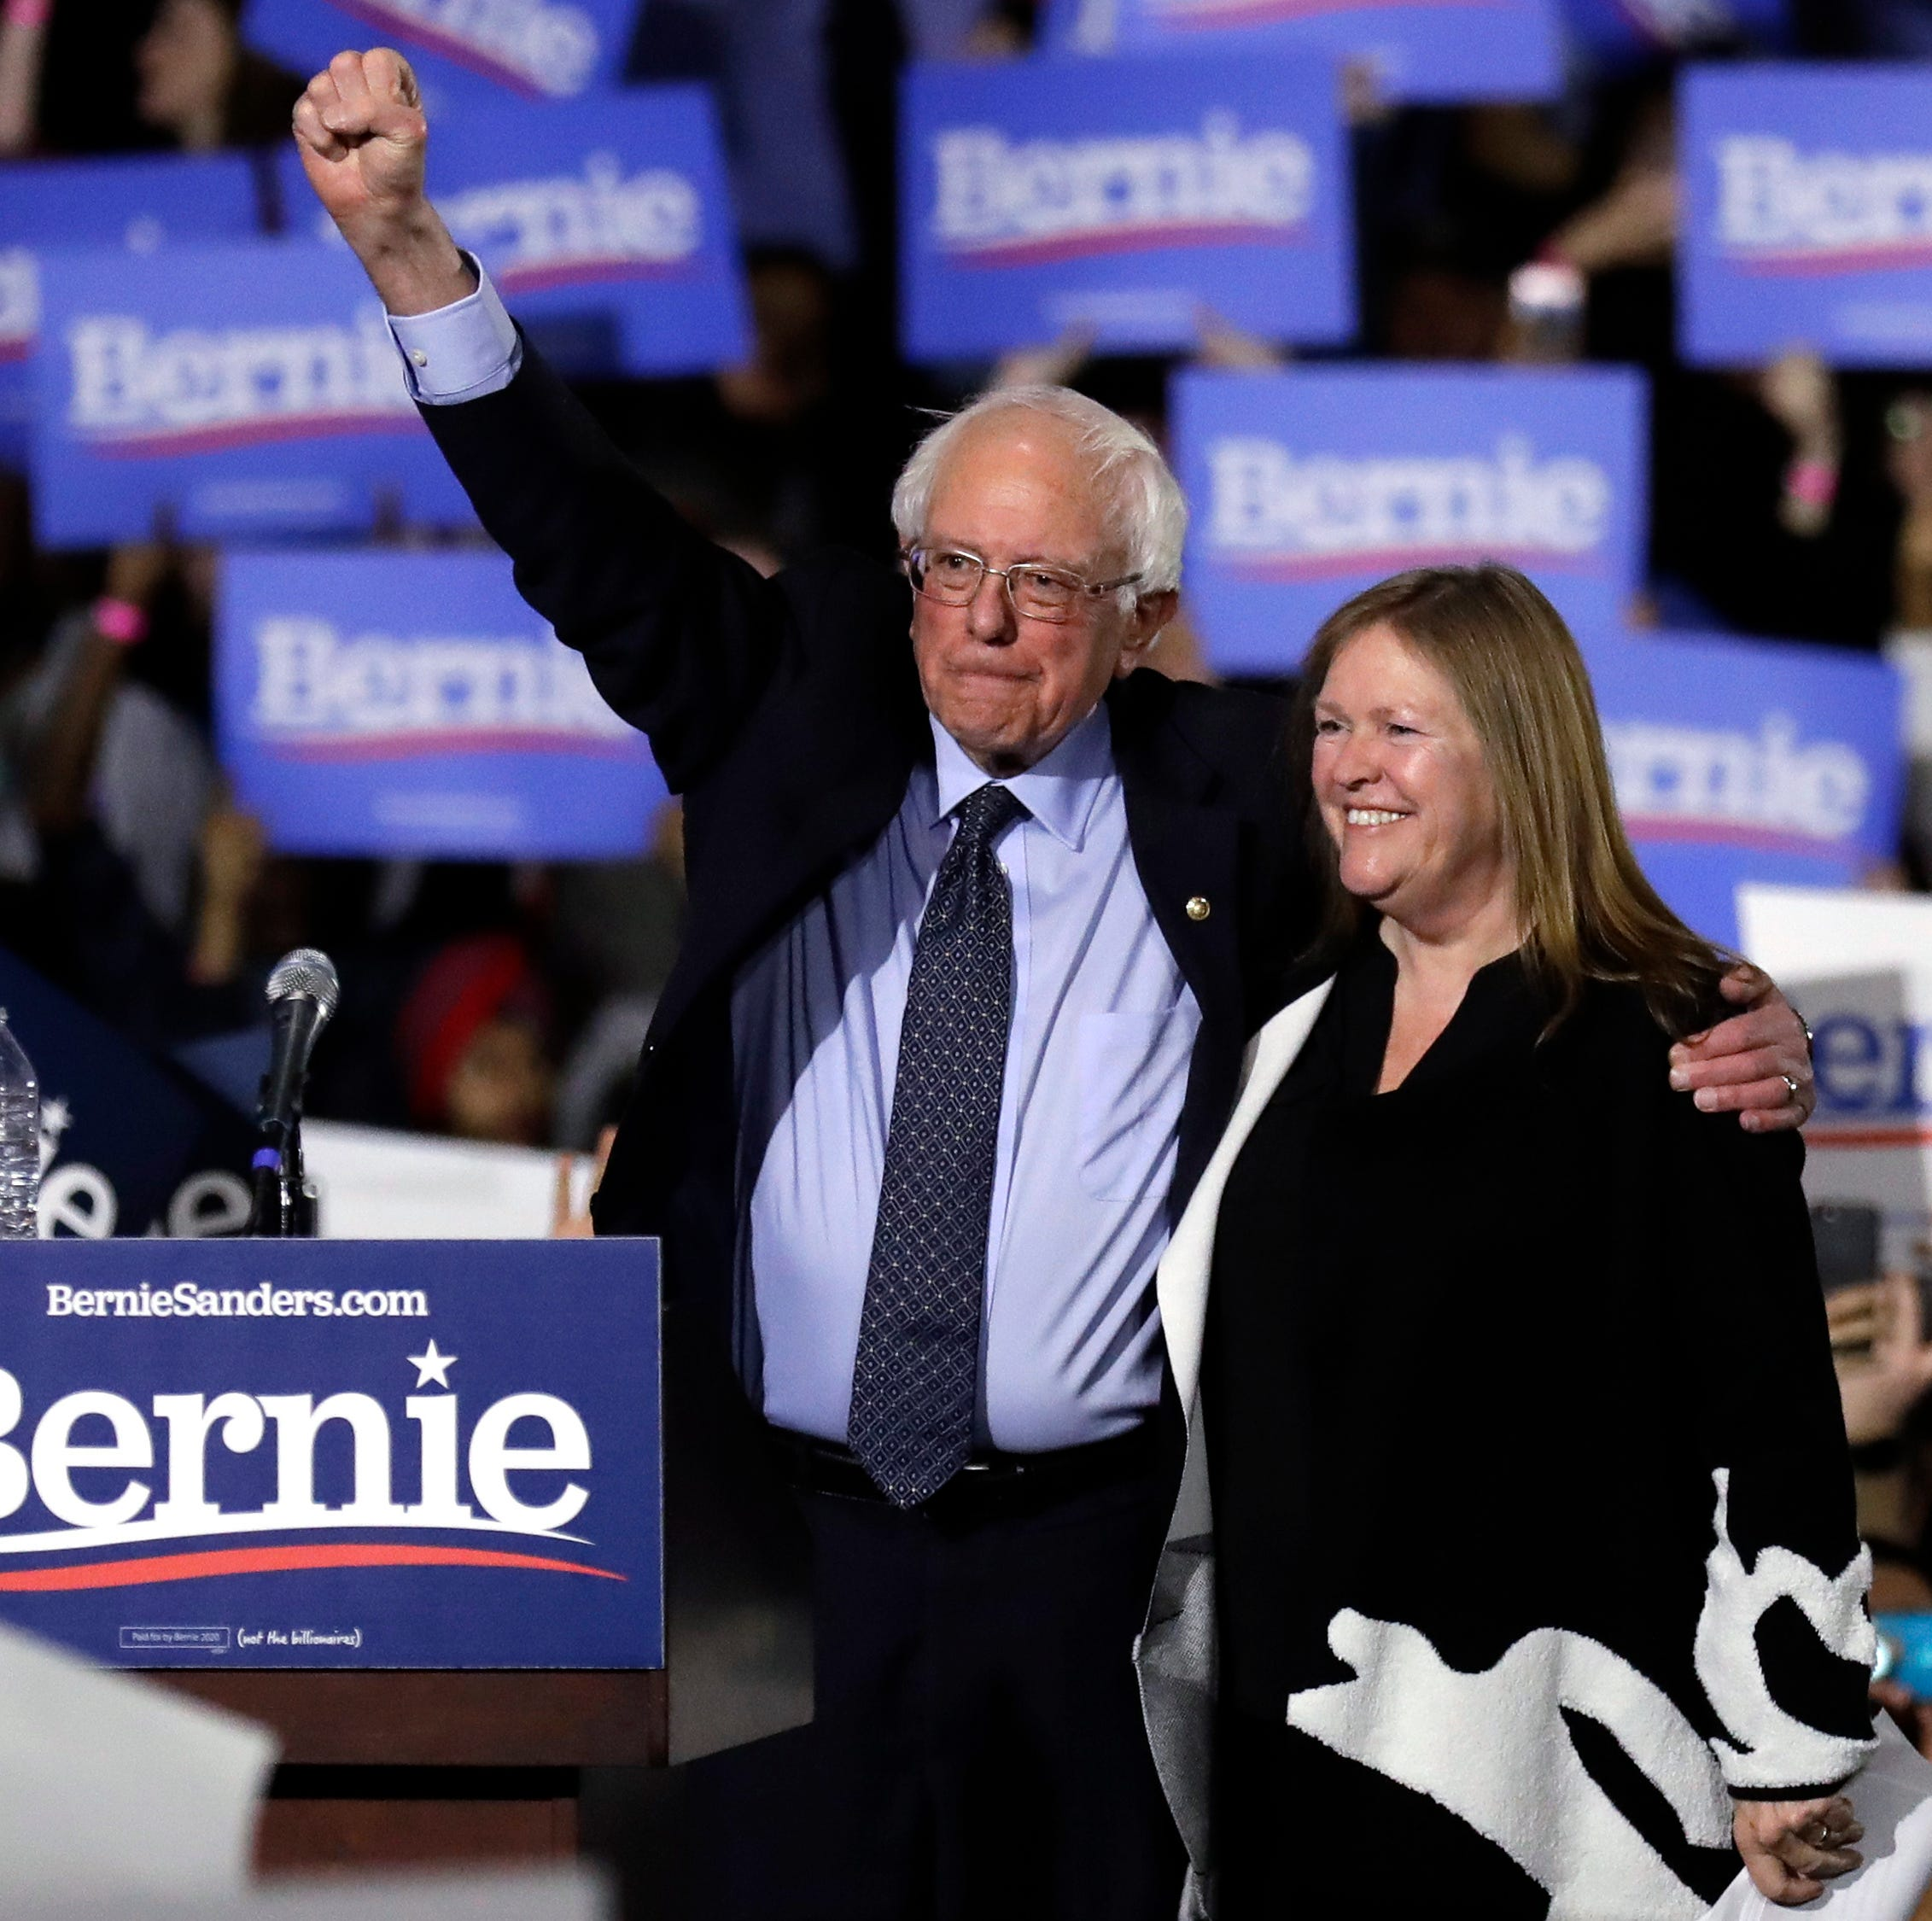 Sanders Institute, founded by Democratic presidential candidate's wife, son shutting down